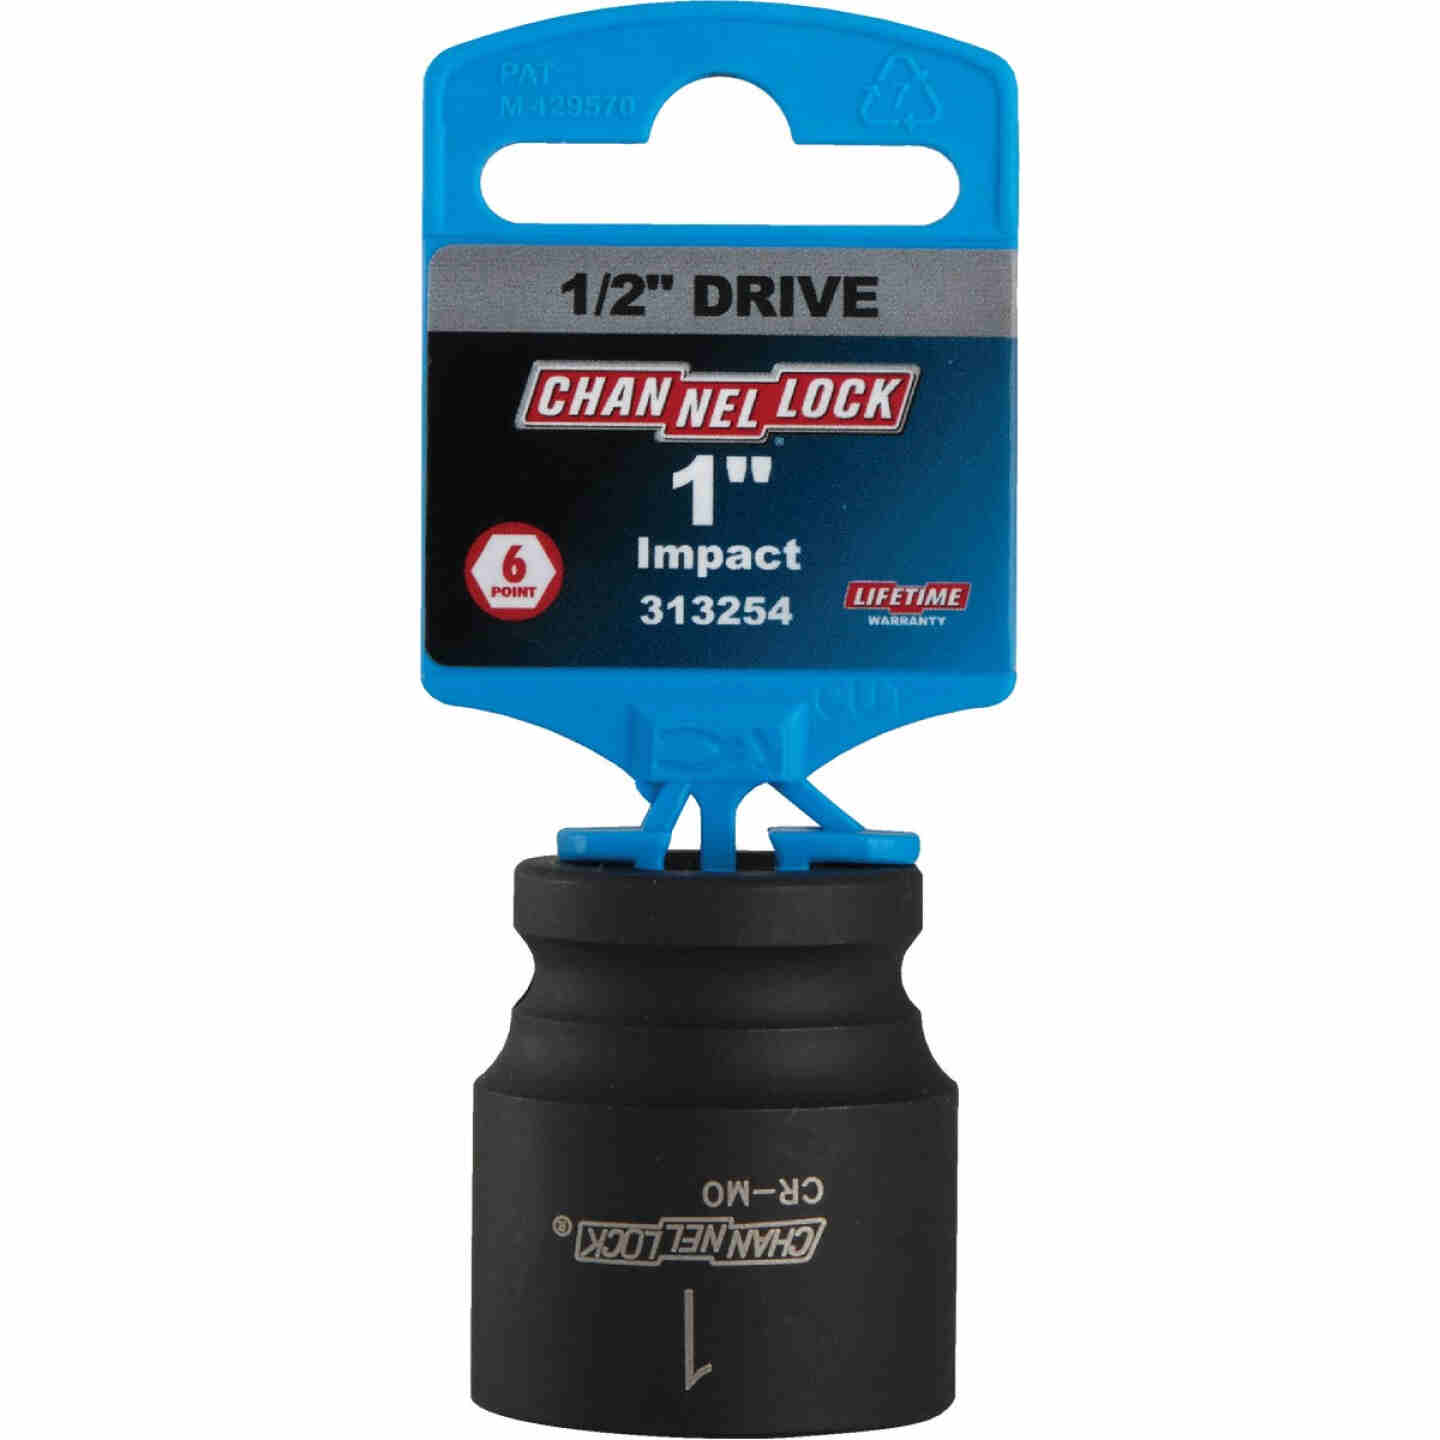 Channellock 1/2 In. Drive 1 In. 6-Point Shallow Standard Impact Socket Image 2